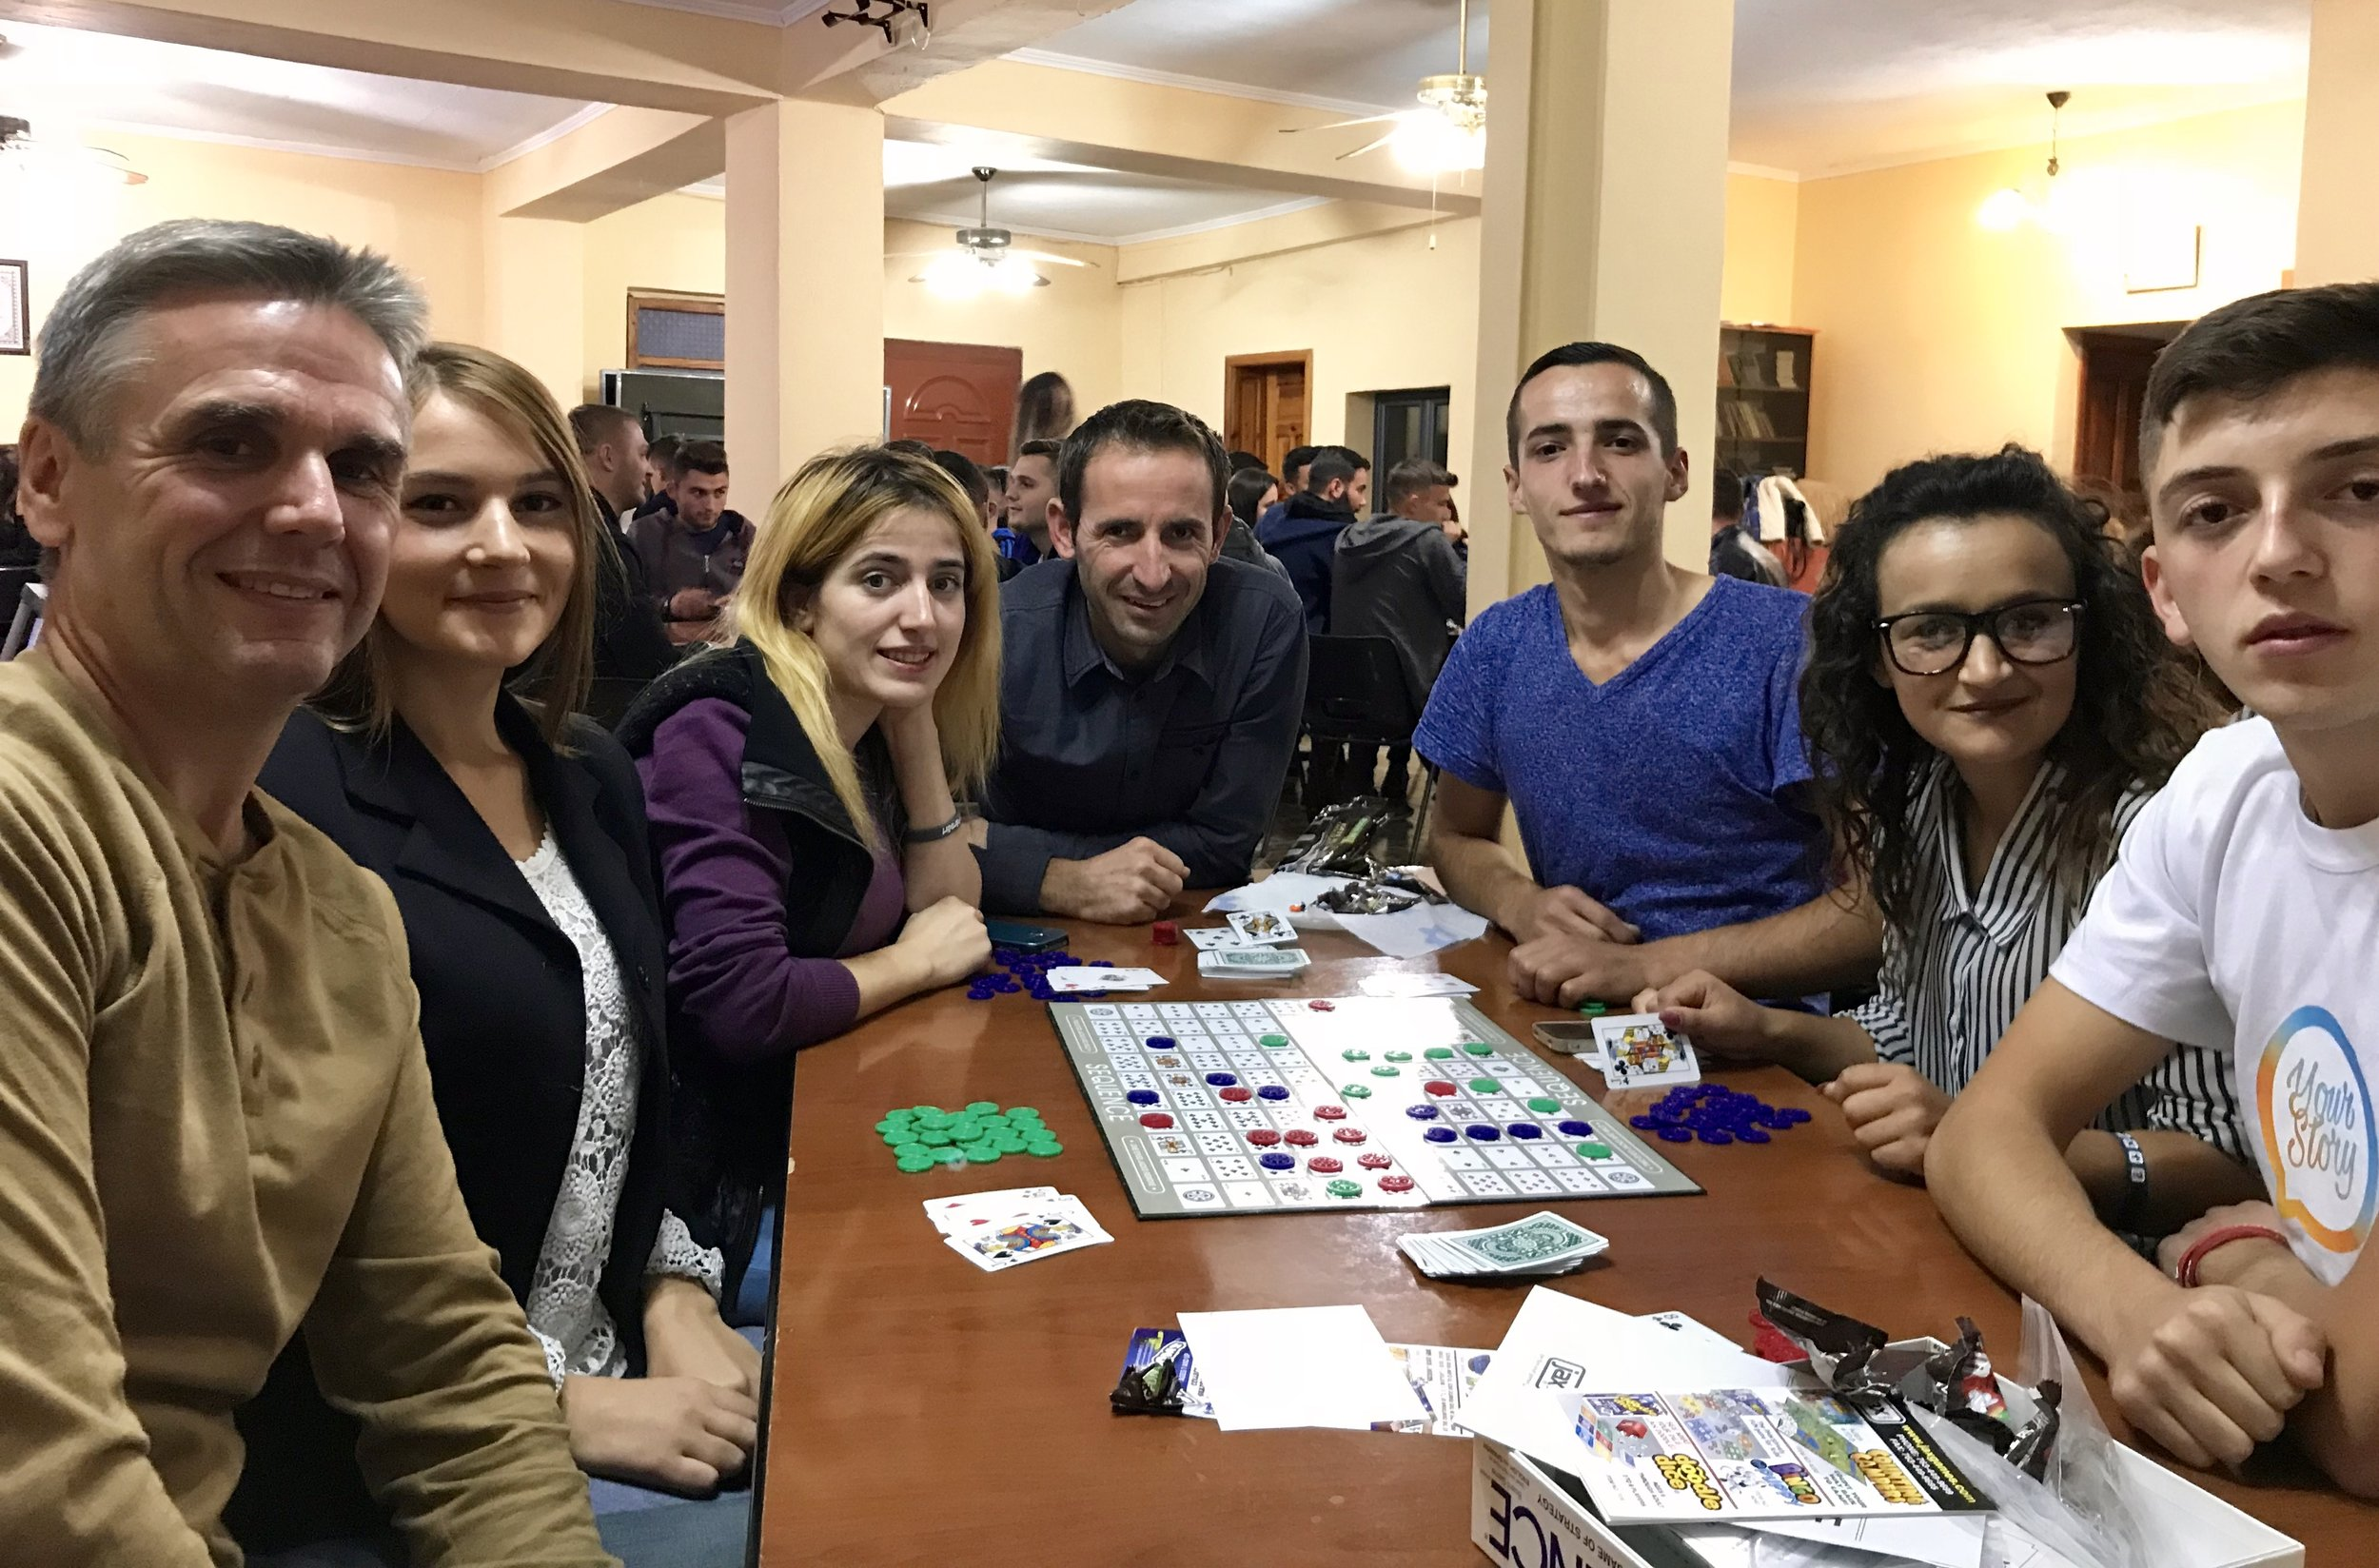 Game Night at the Elbasan campus